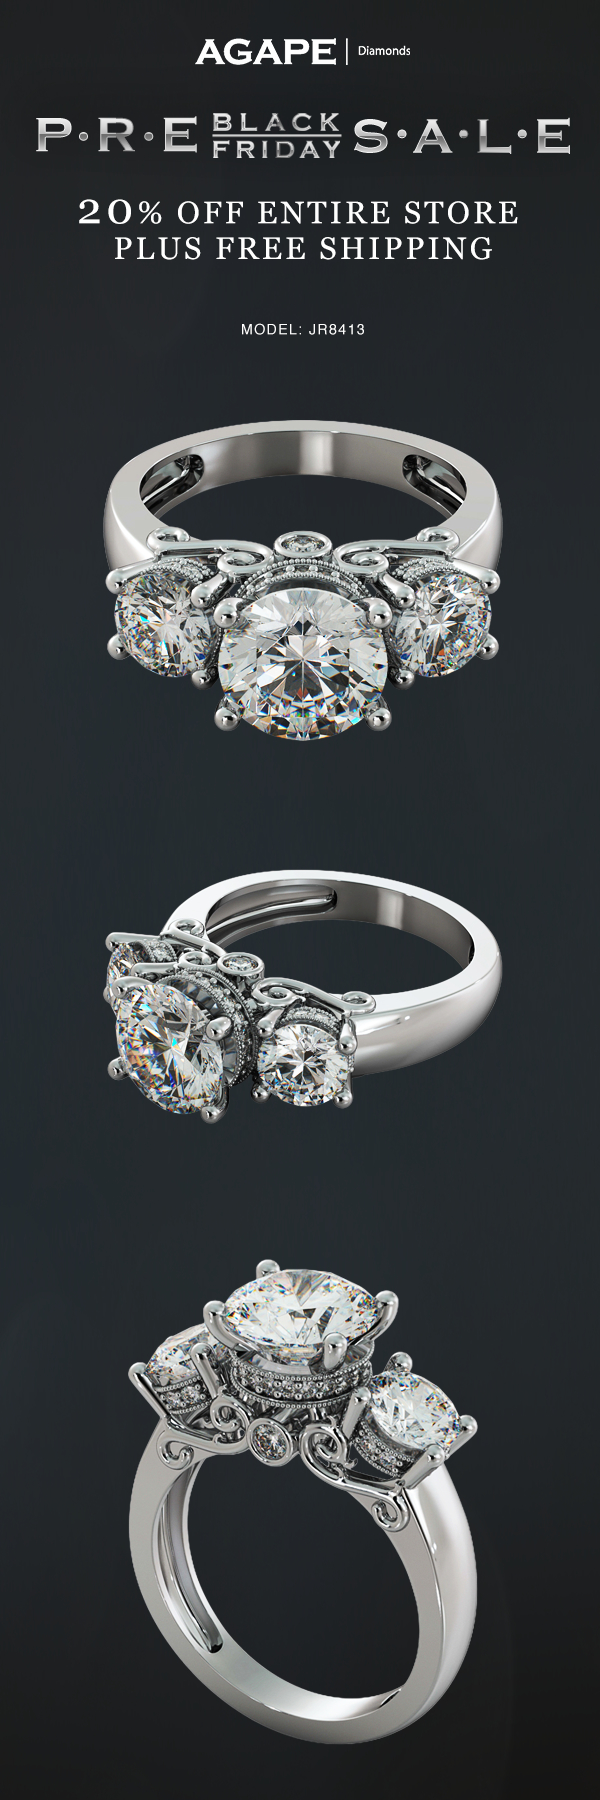 One of our Feature Engagement Rings for our Pre Black Friday Sale 20